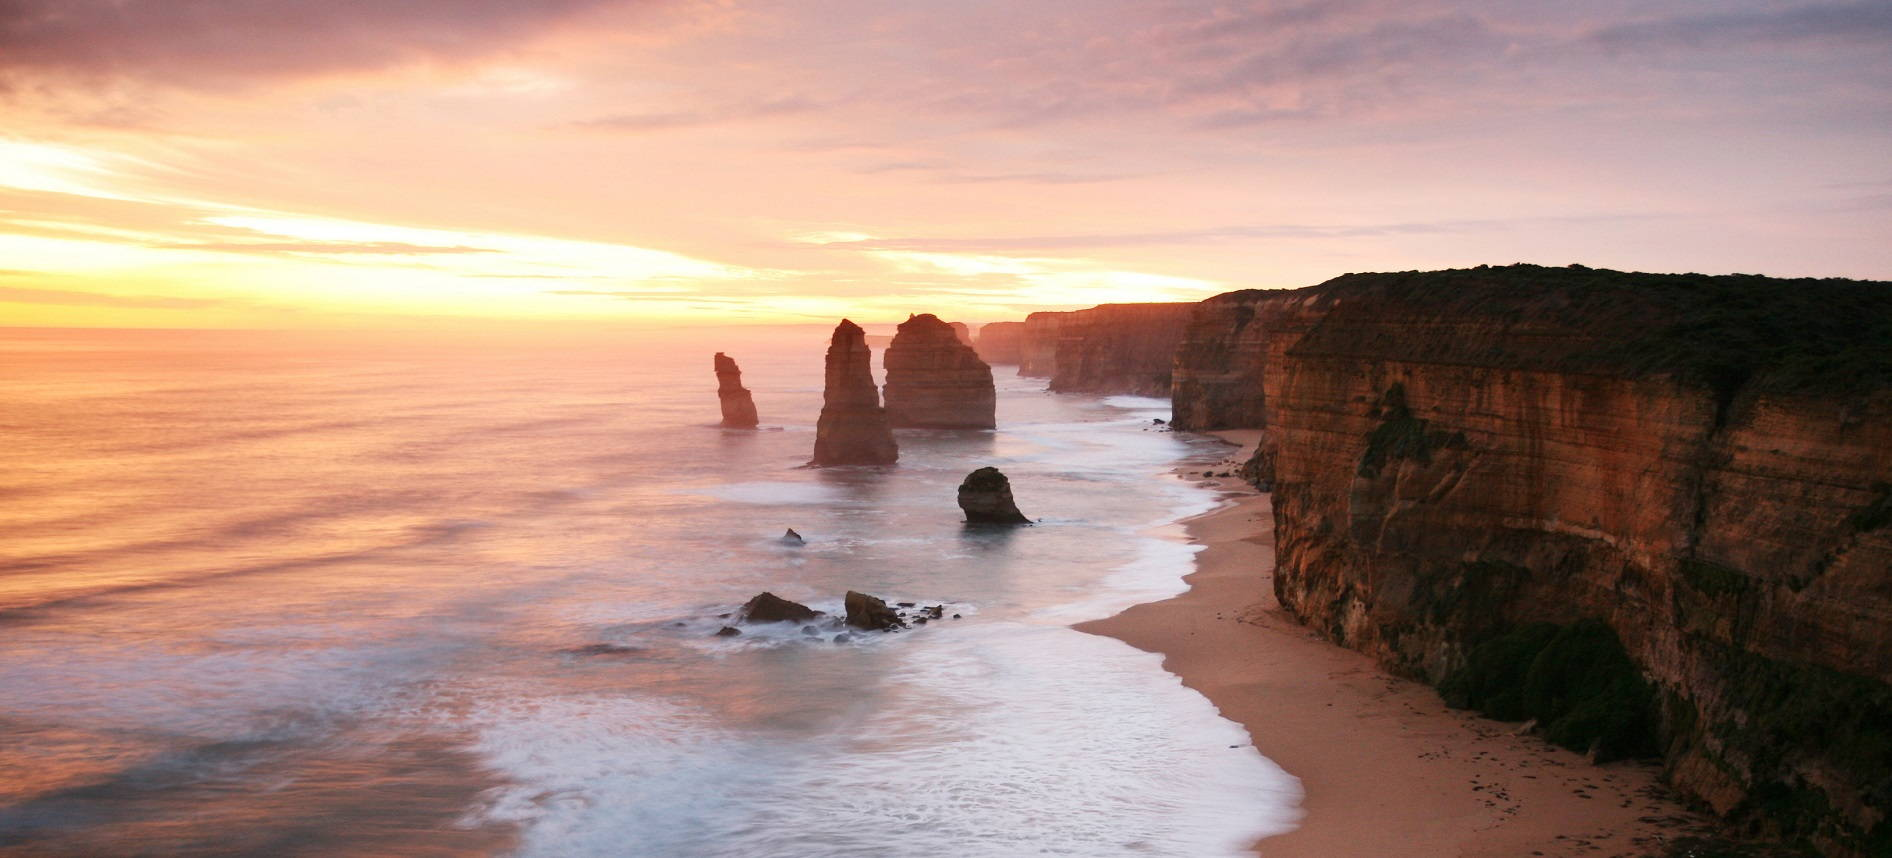 12 Apostles, Great Ocean Road Sunset